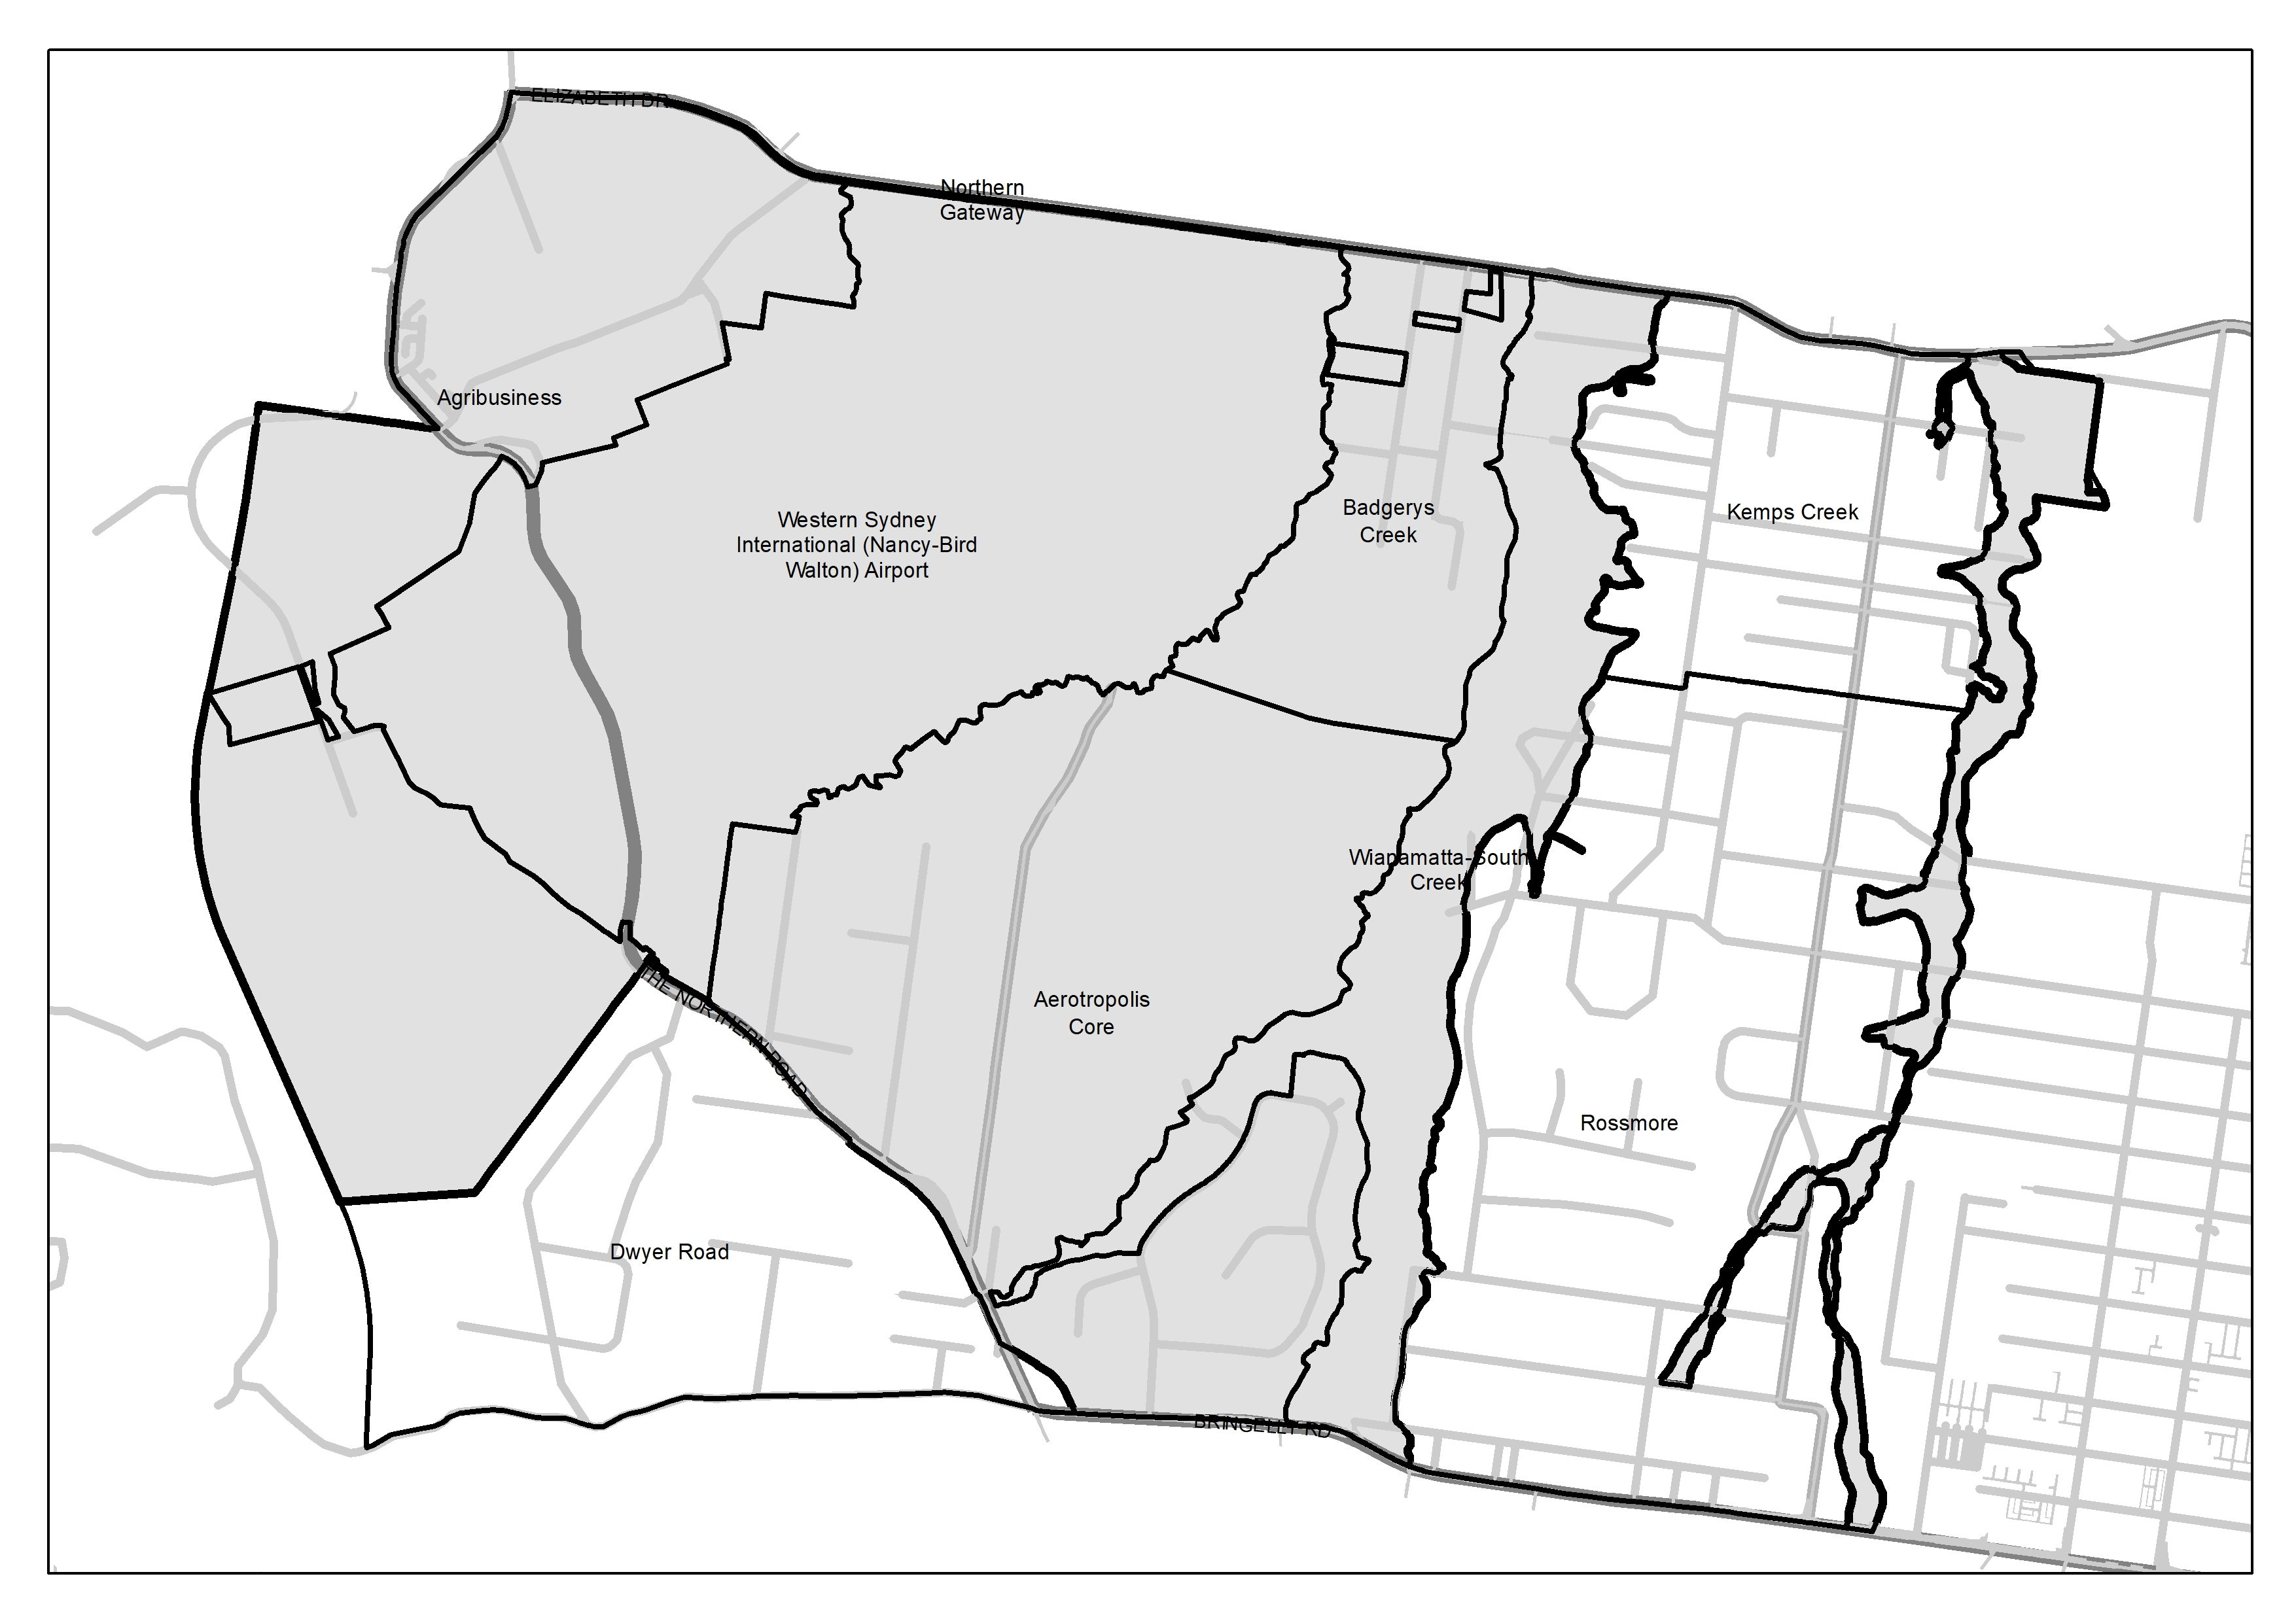 Map indicating land within the Western Sydney Aerotropolis subject to the Development Control Plan Phase 1.